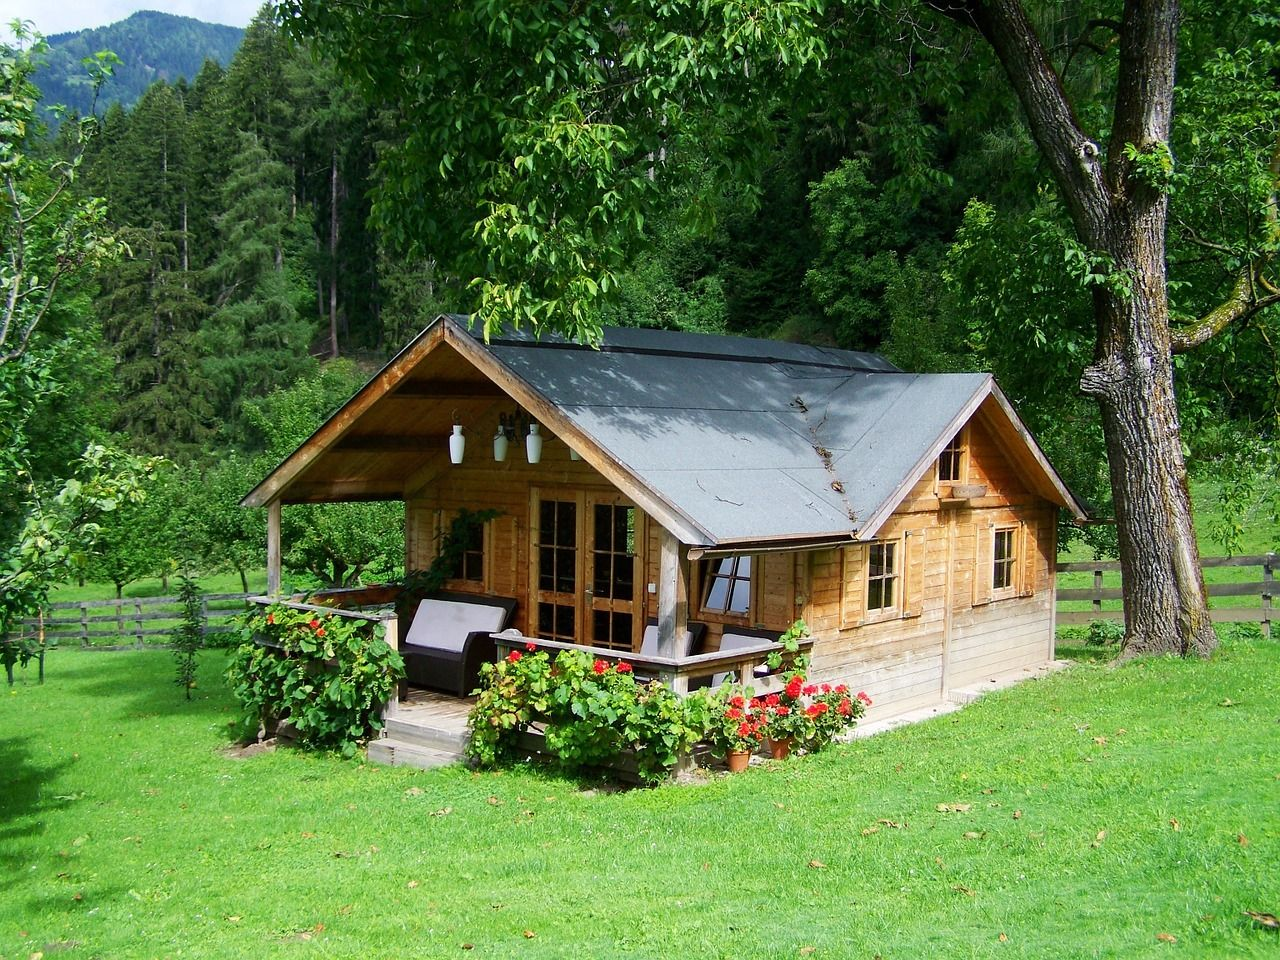 15 Inspiring Downsizing House Plans That Will Motivate You To Move Small Wooden House Small House Living Best Tiny House